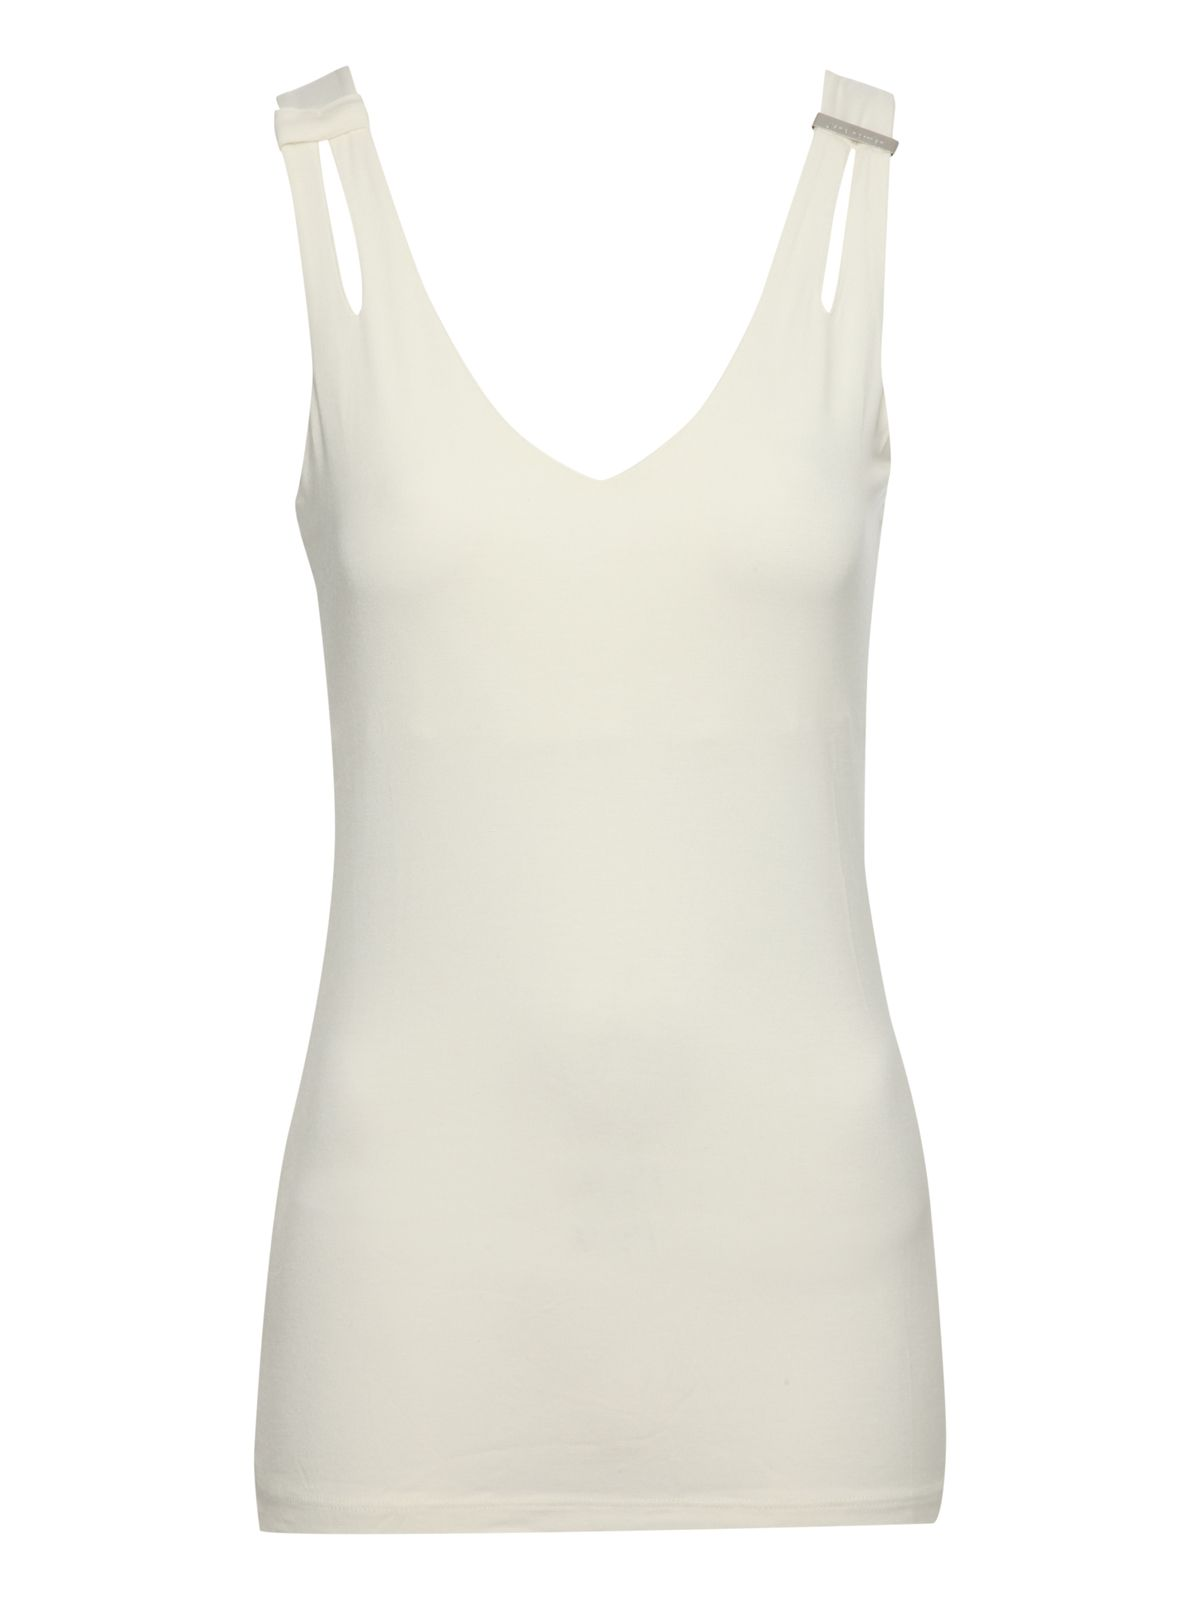 Hidden support vest top